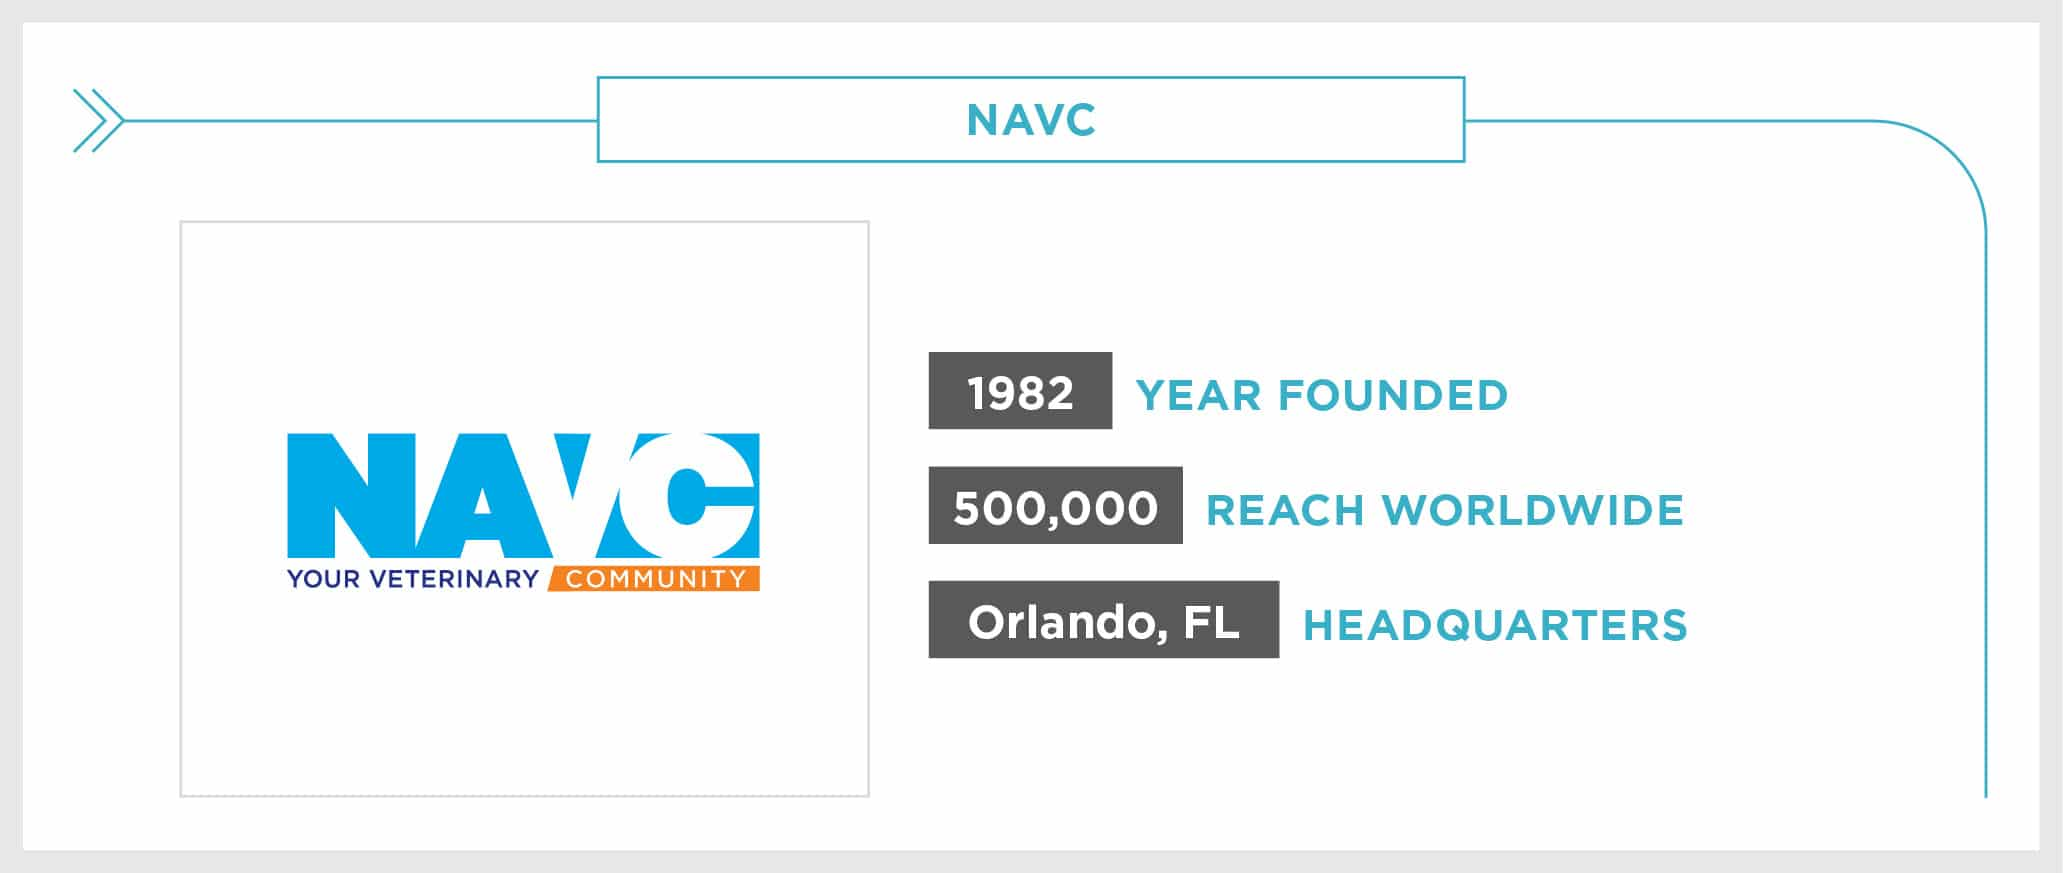 Vision Statement: The NAVC